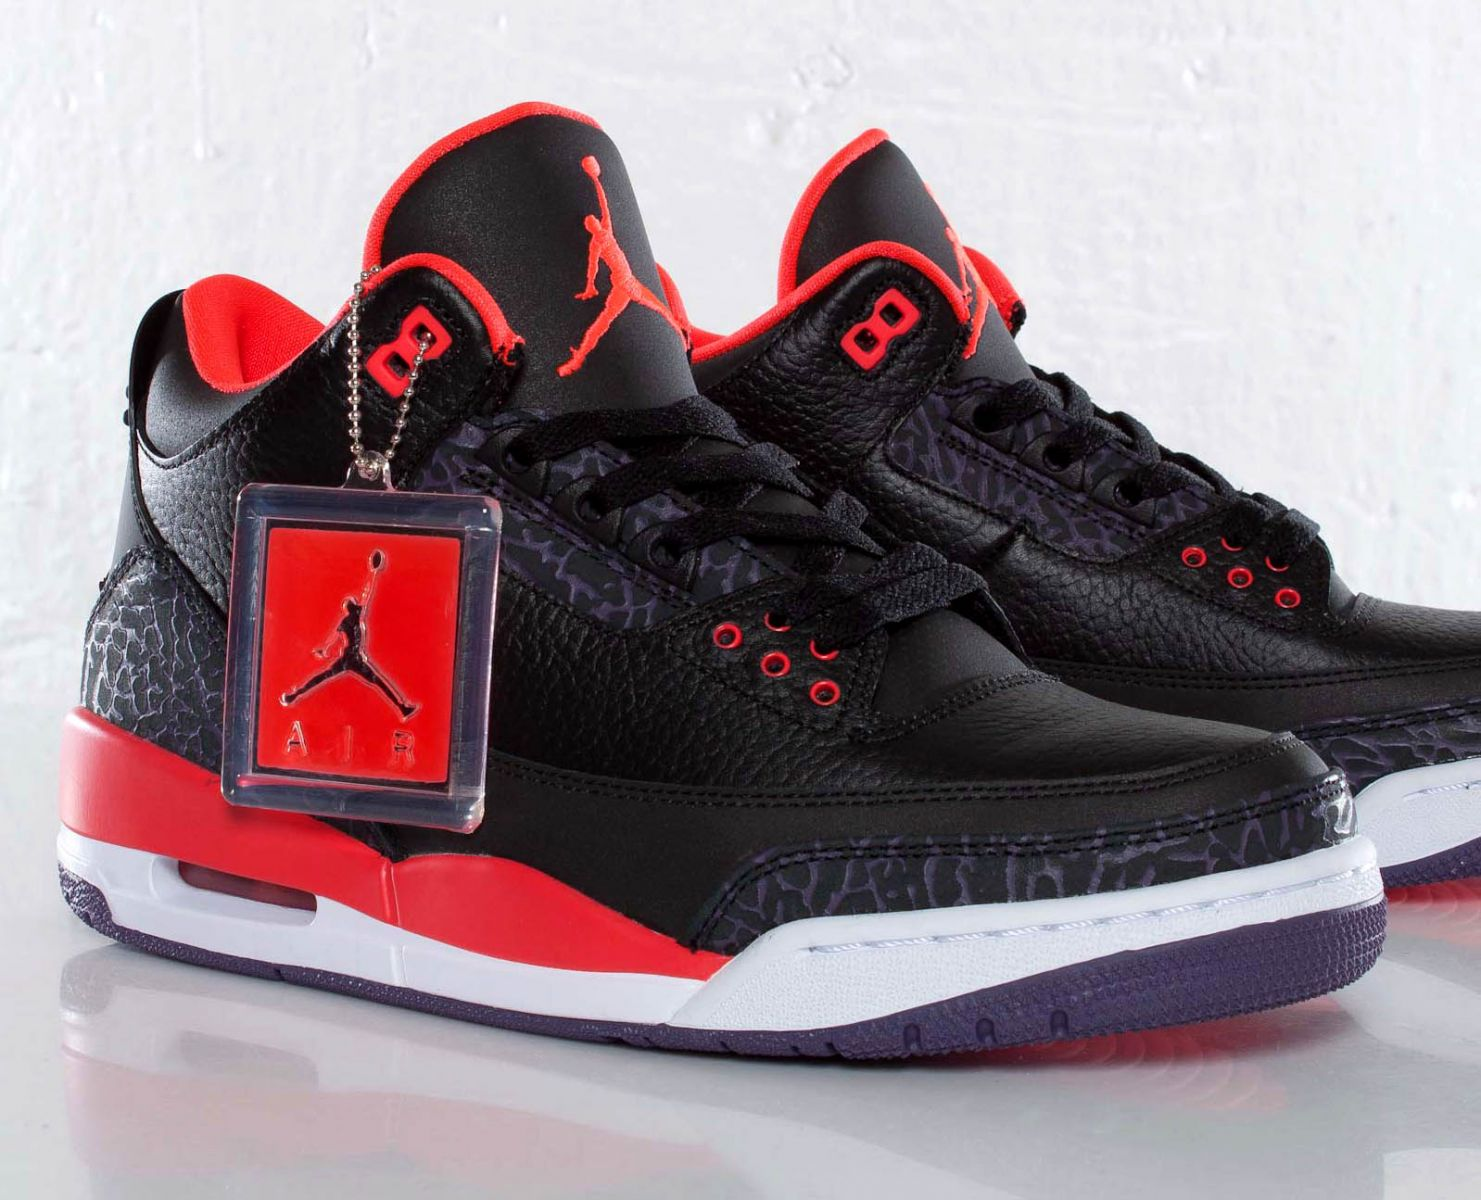 uk availability 941e1 cc09c Air Jordan 3 Retro